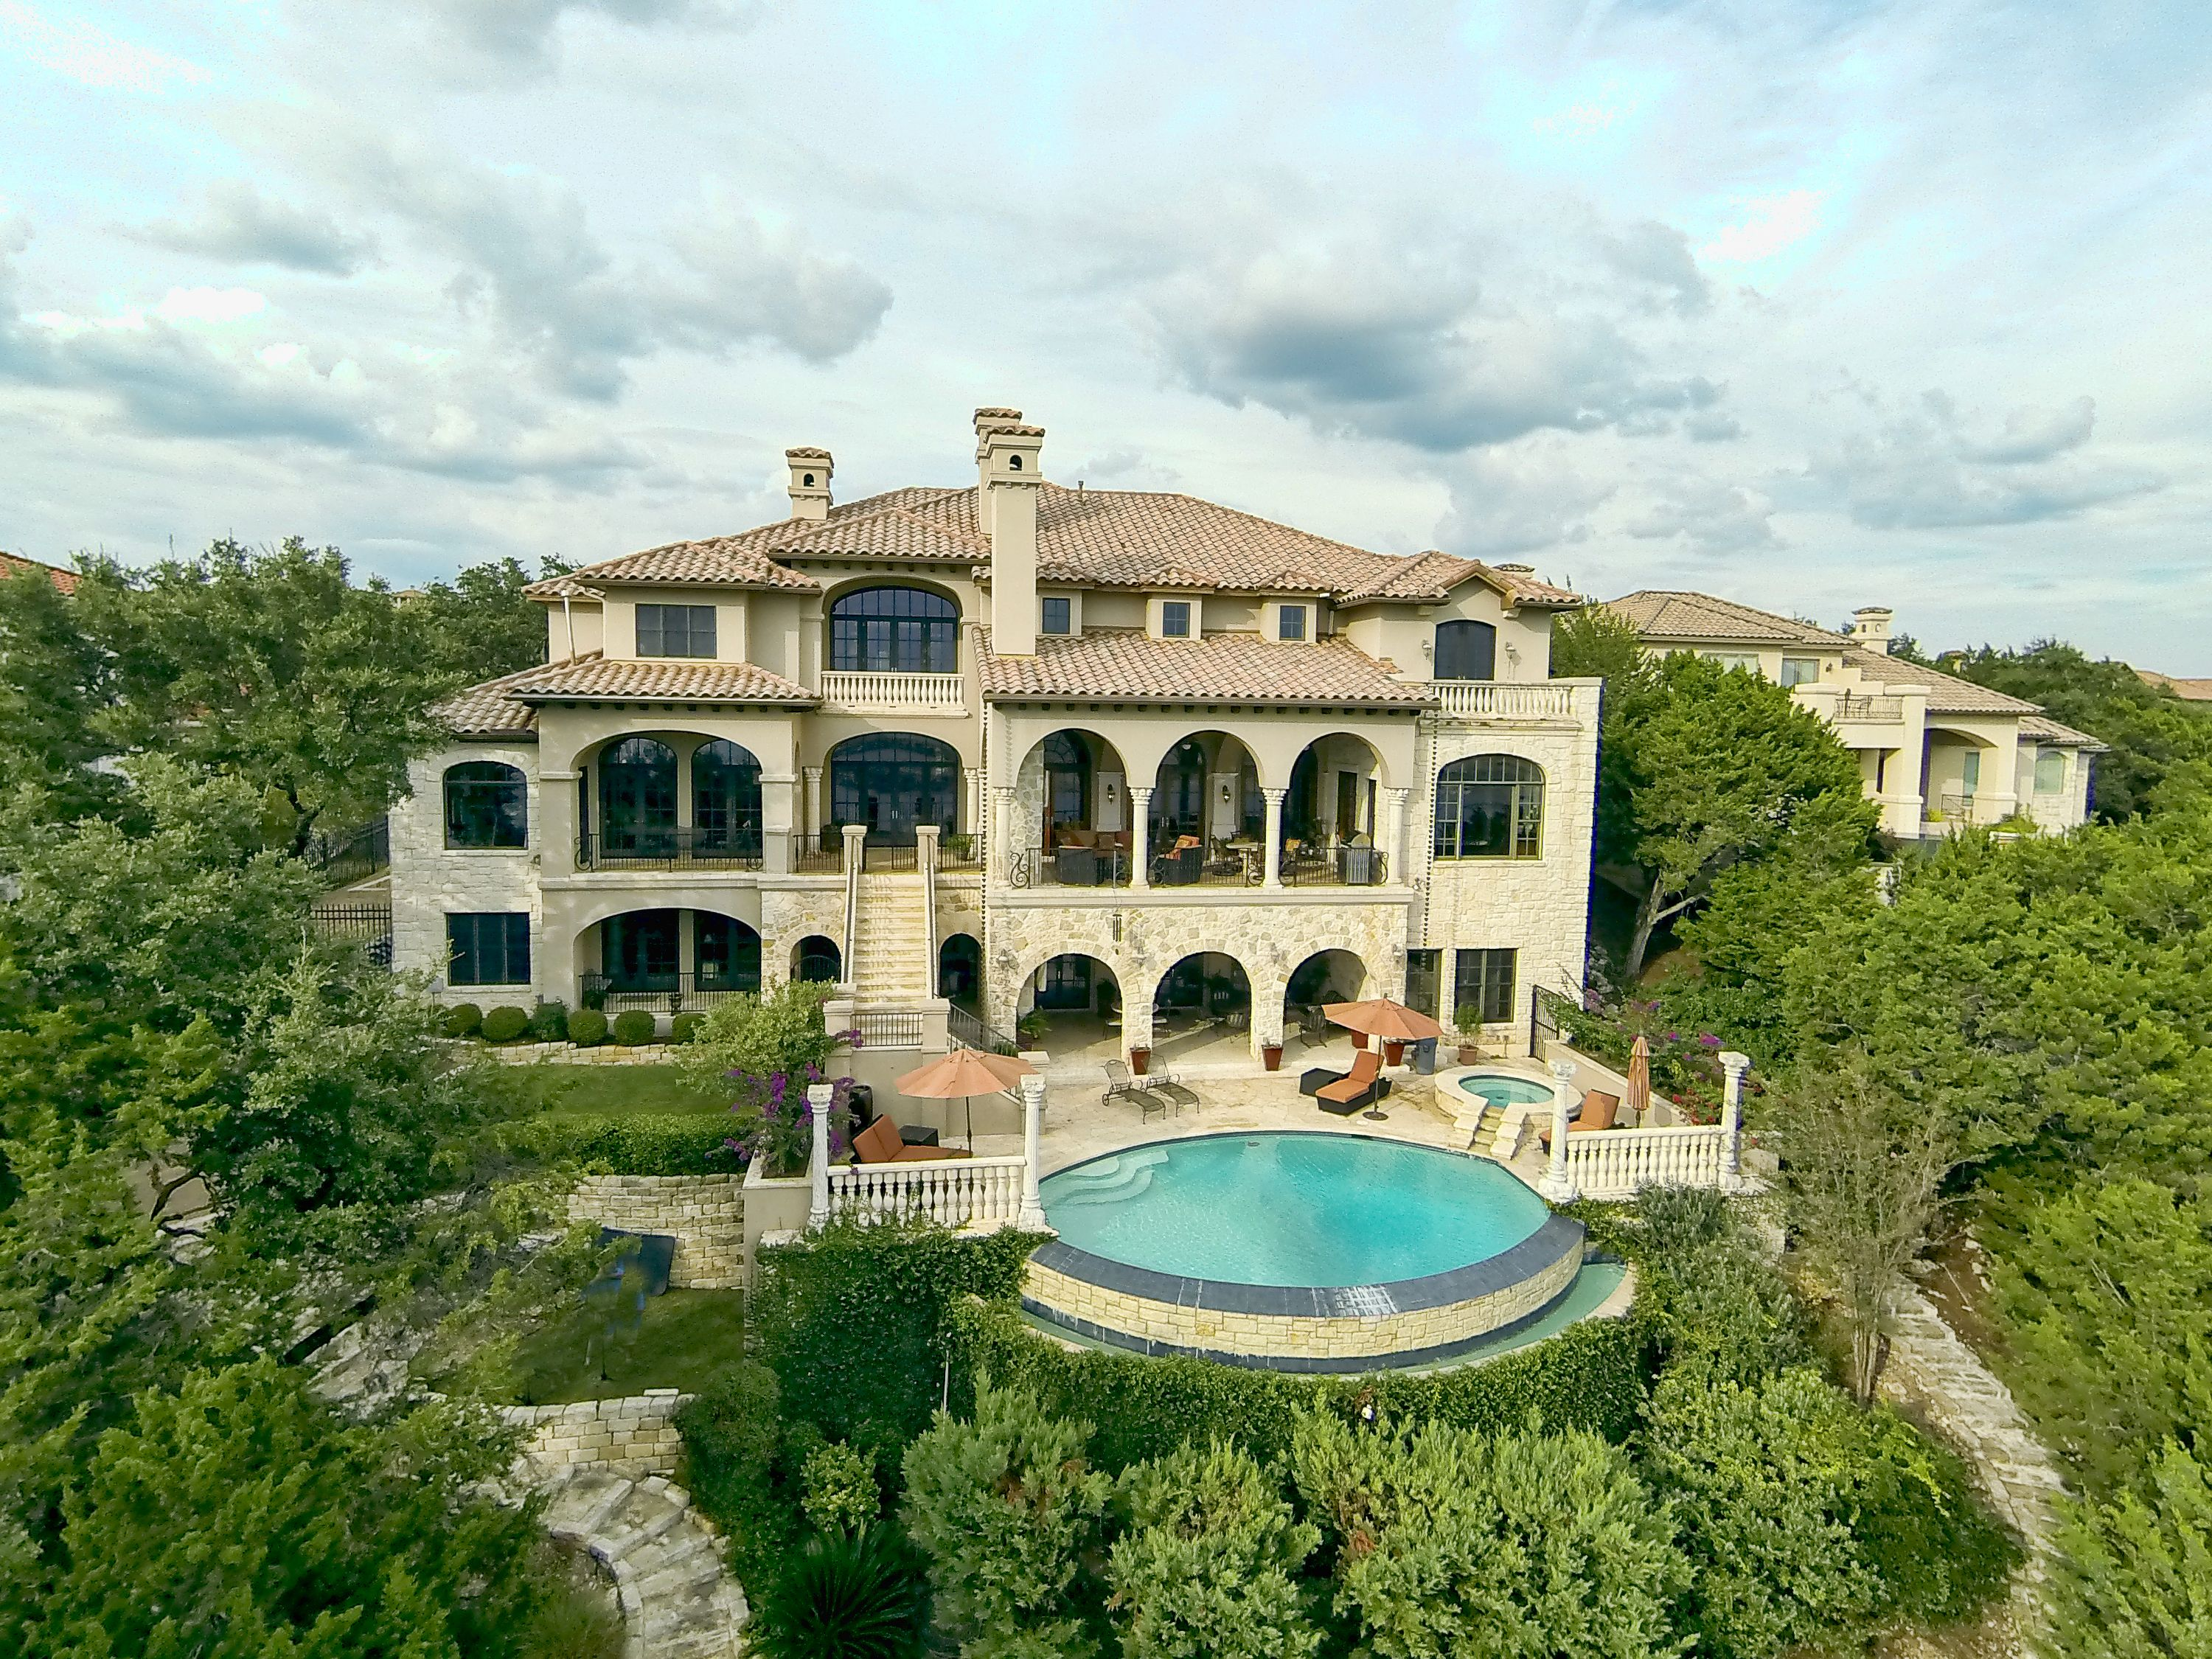 This waterfront estate is located on a